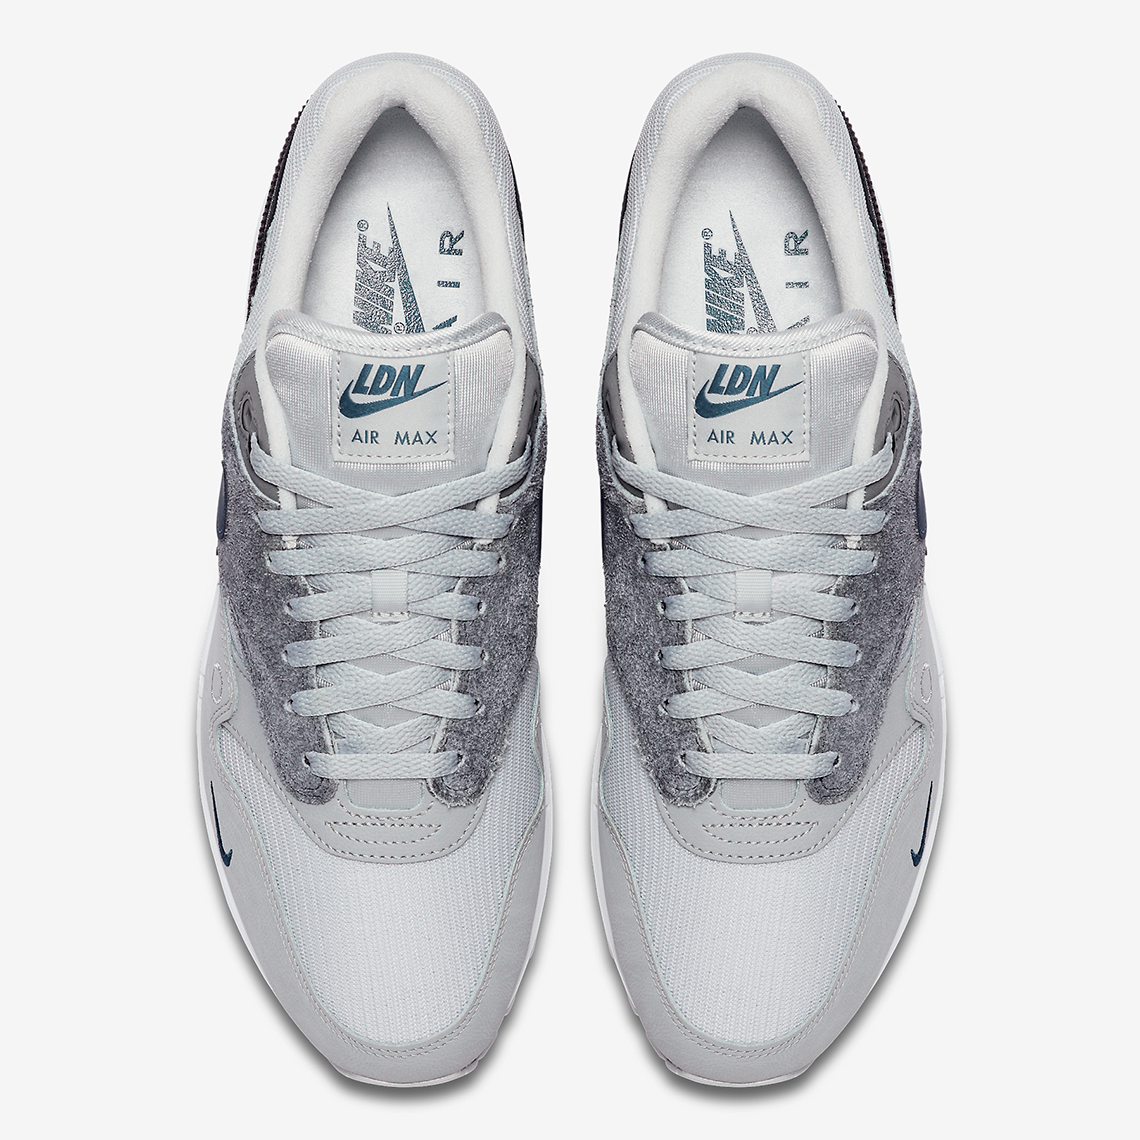 67% OFF,9. nike air max 1 ultra city collection,deltalux.it!